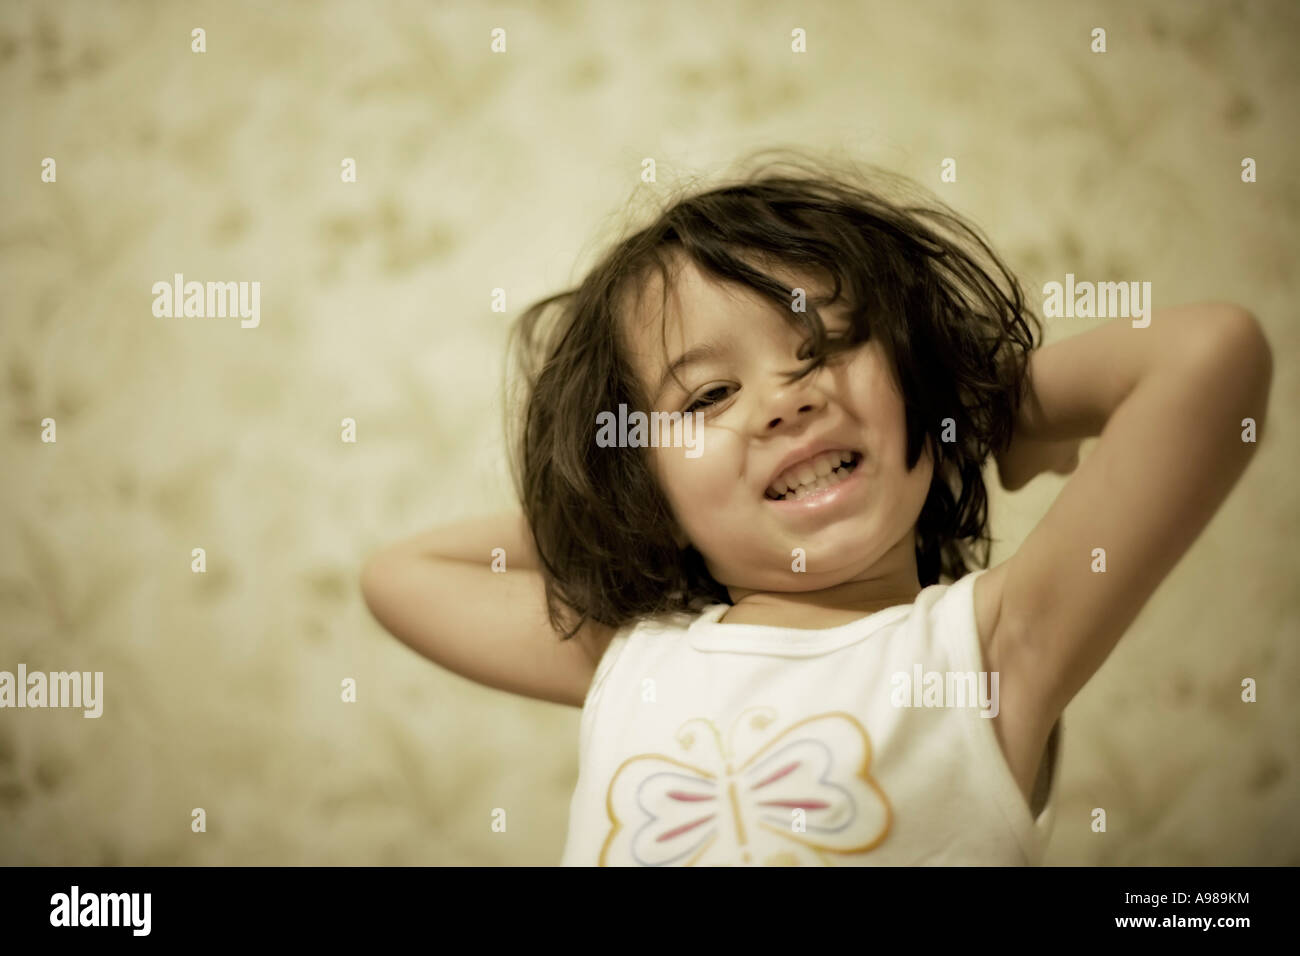 Girl wakes up and stretches - Stock Image